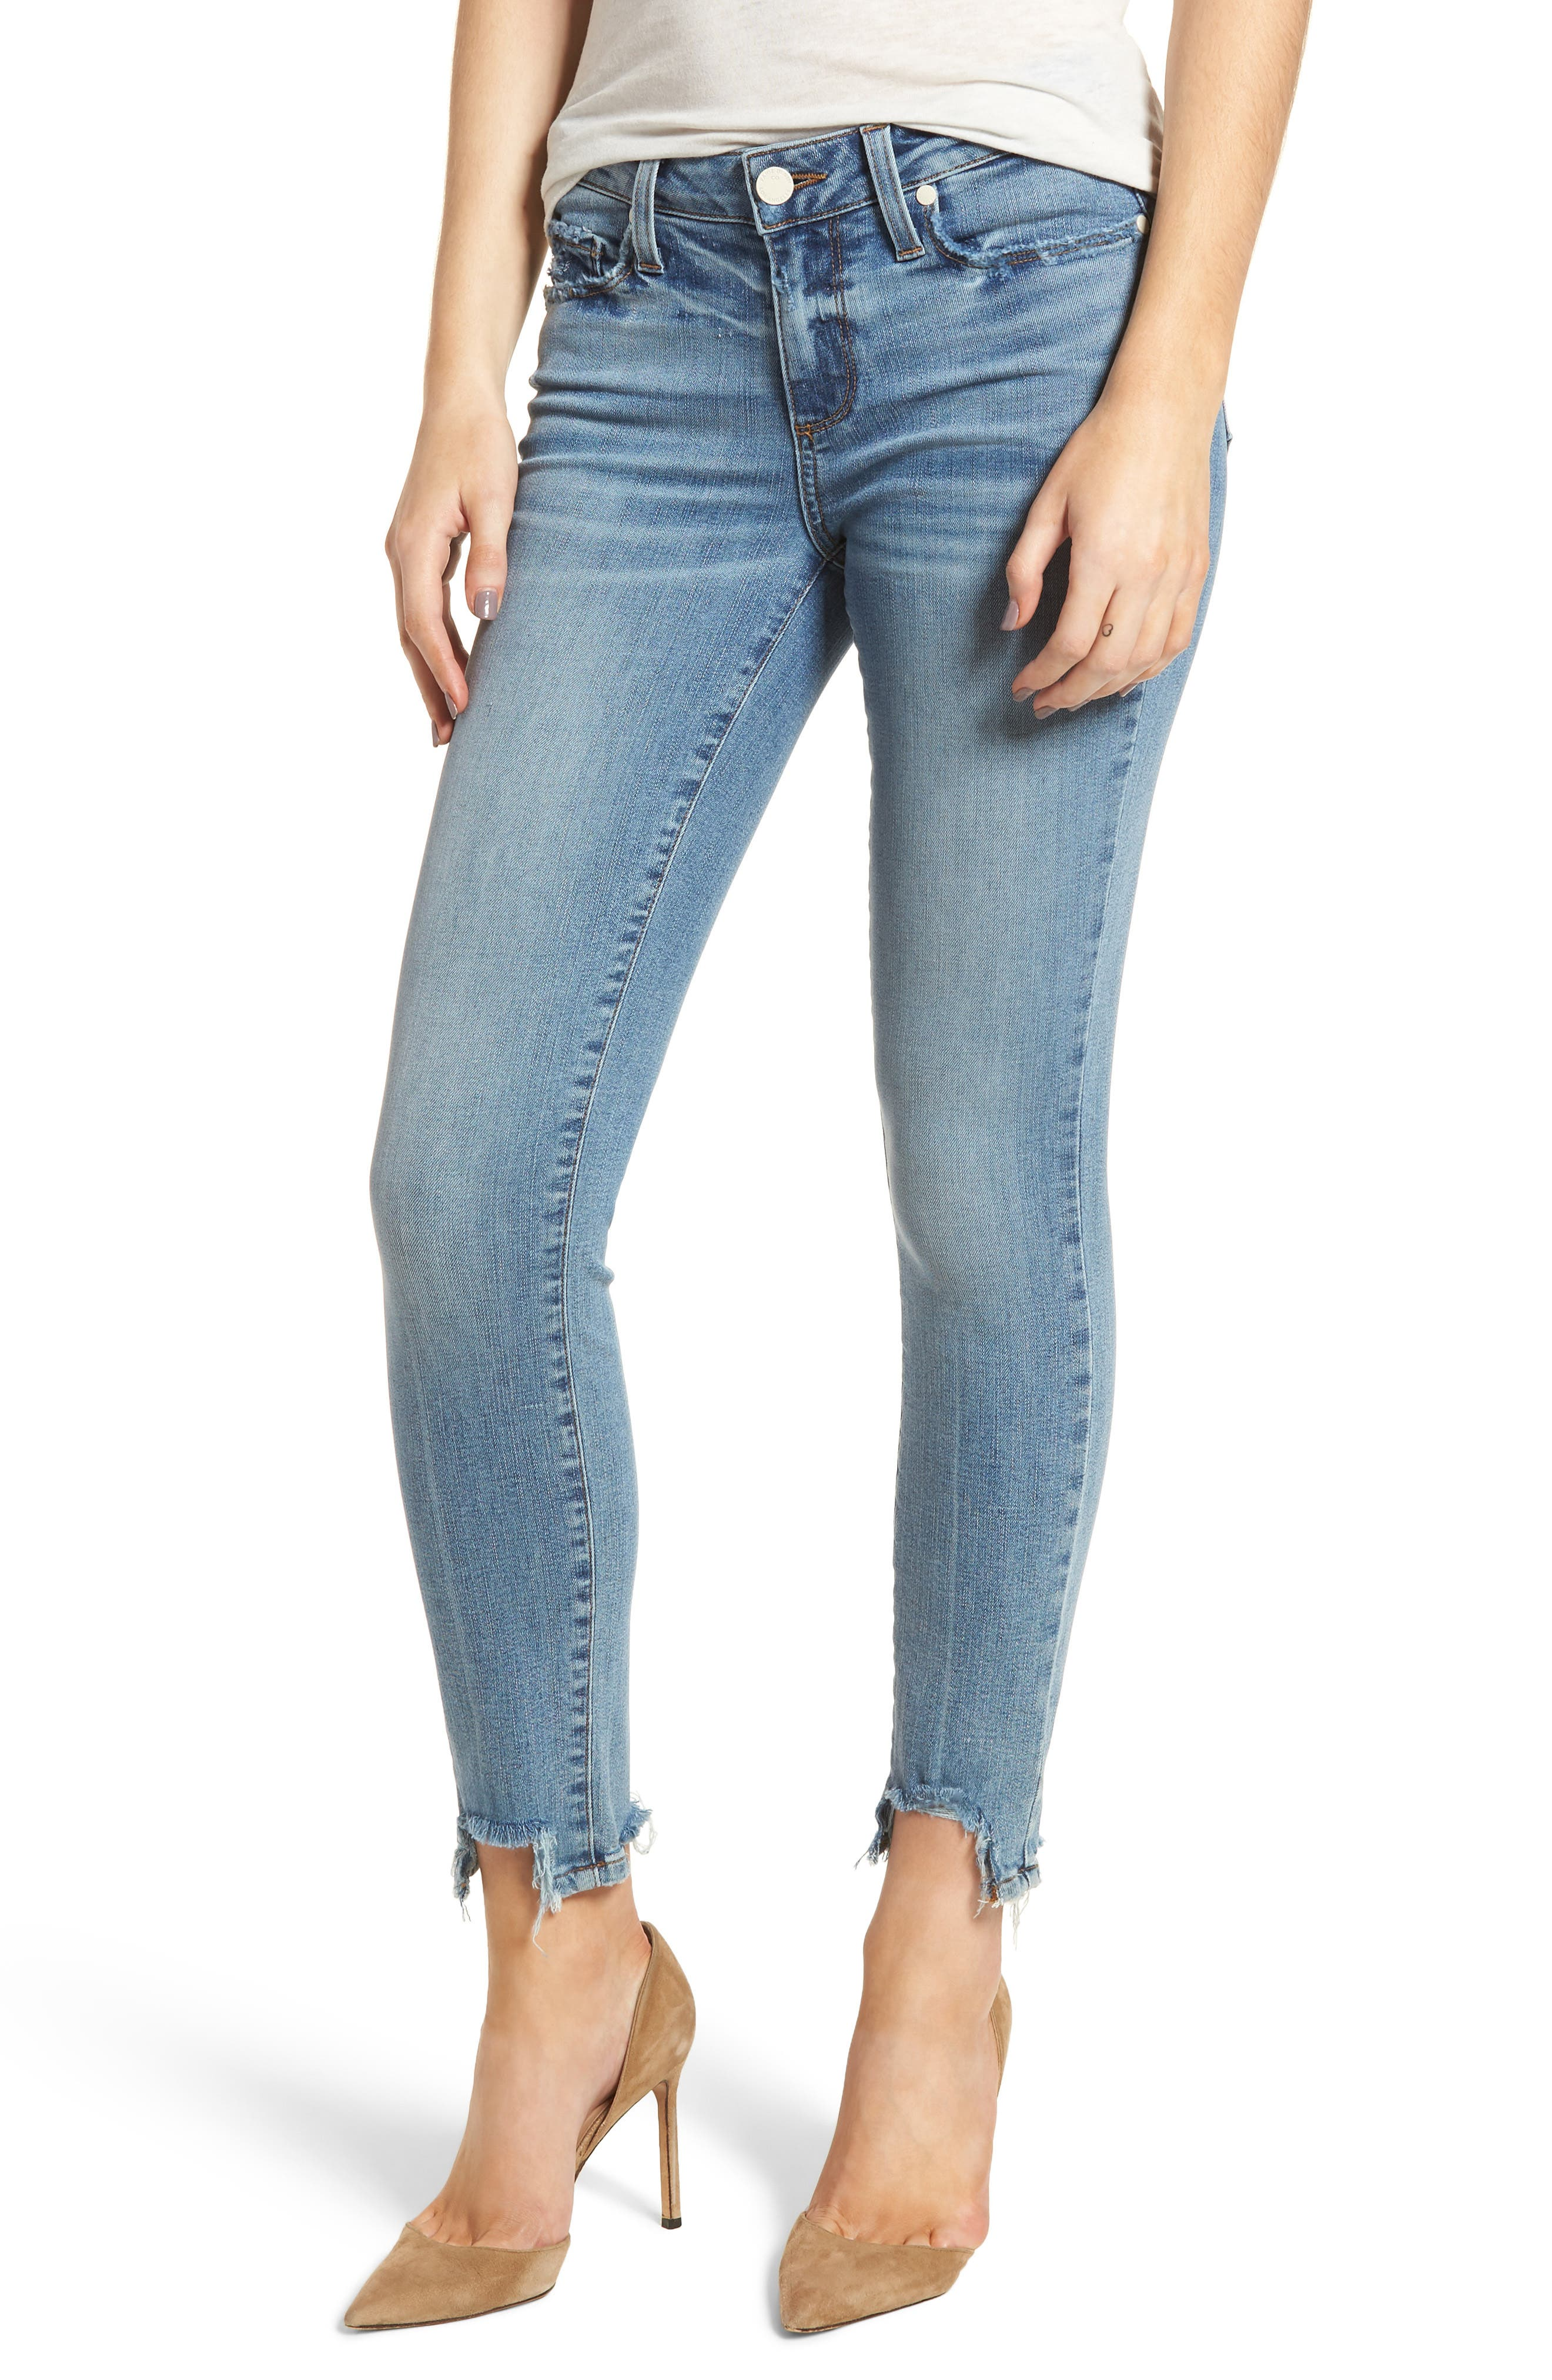 Transcend Vintage - Verdugo Ankle Ultra Skinny Jeans,                             Main thumbnail 1, color,                             Zahara